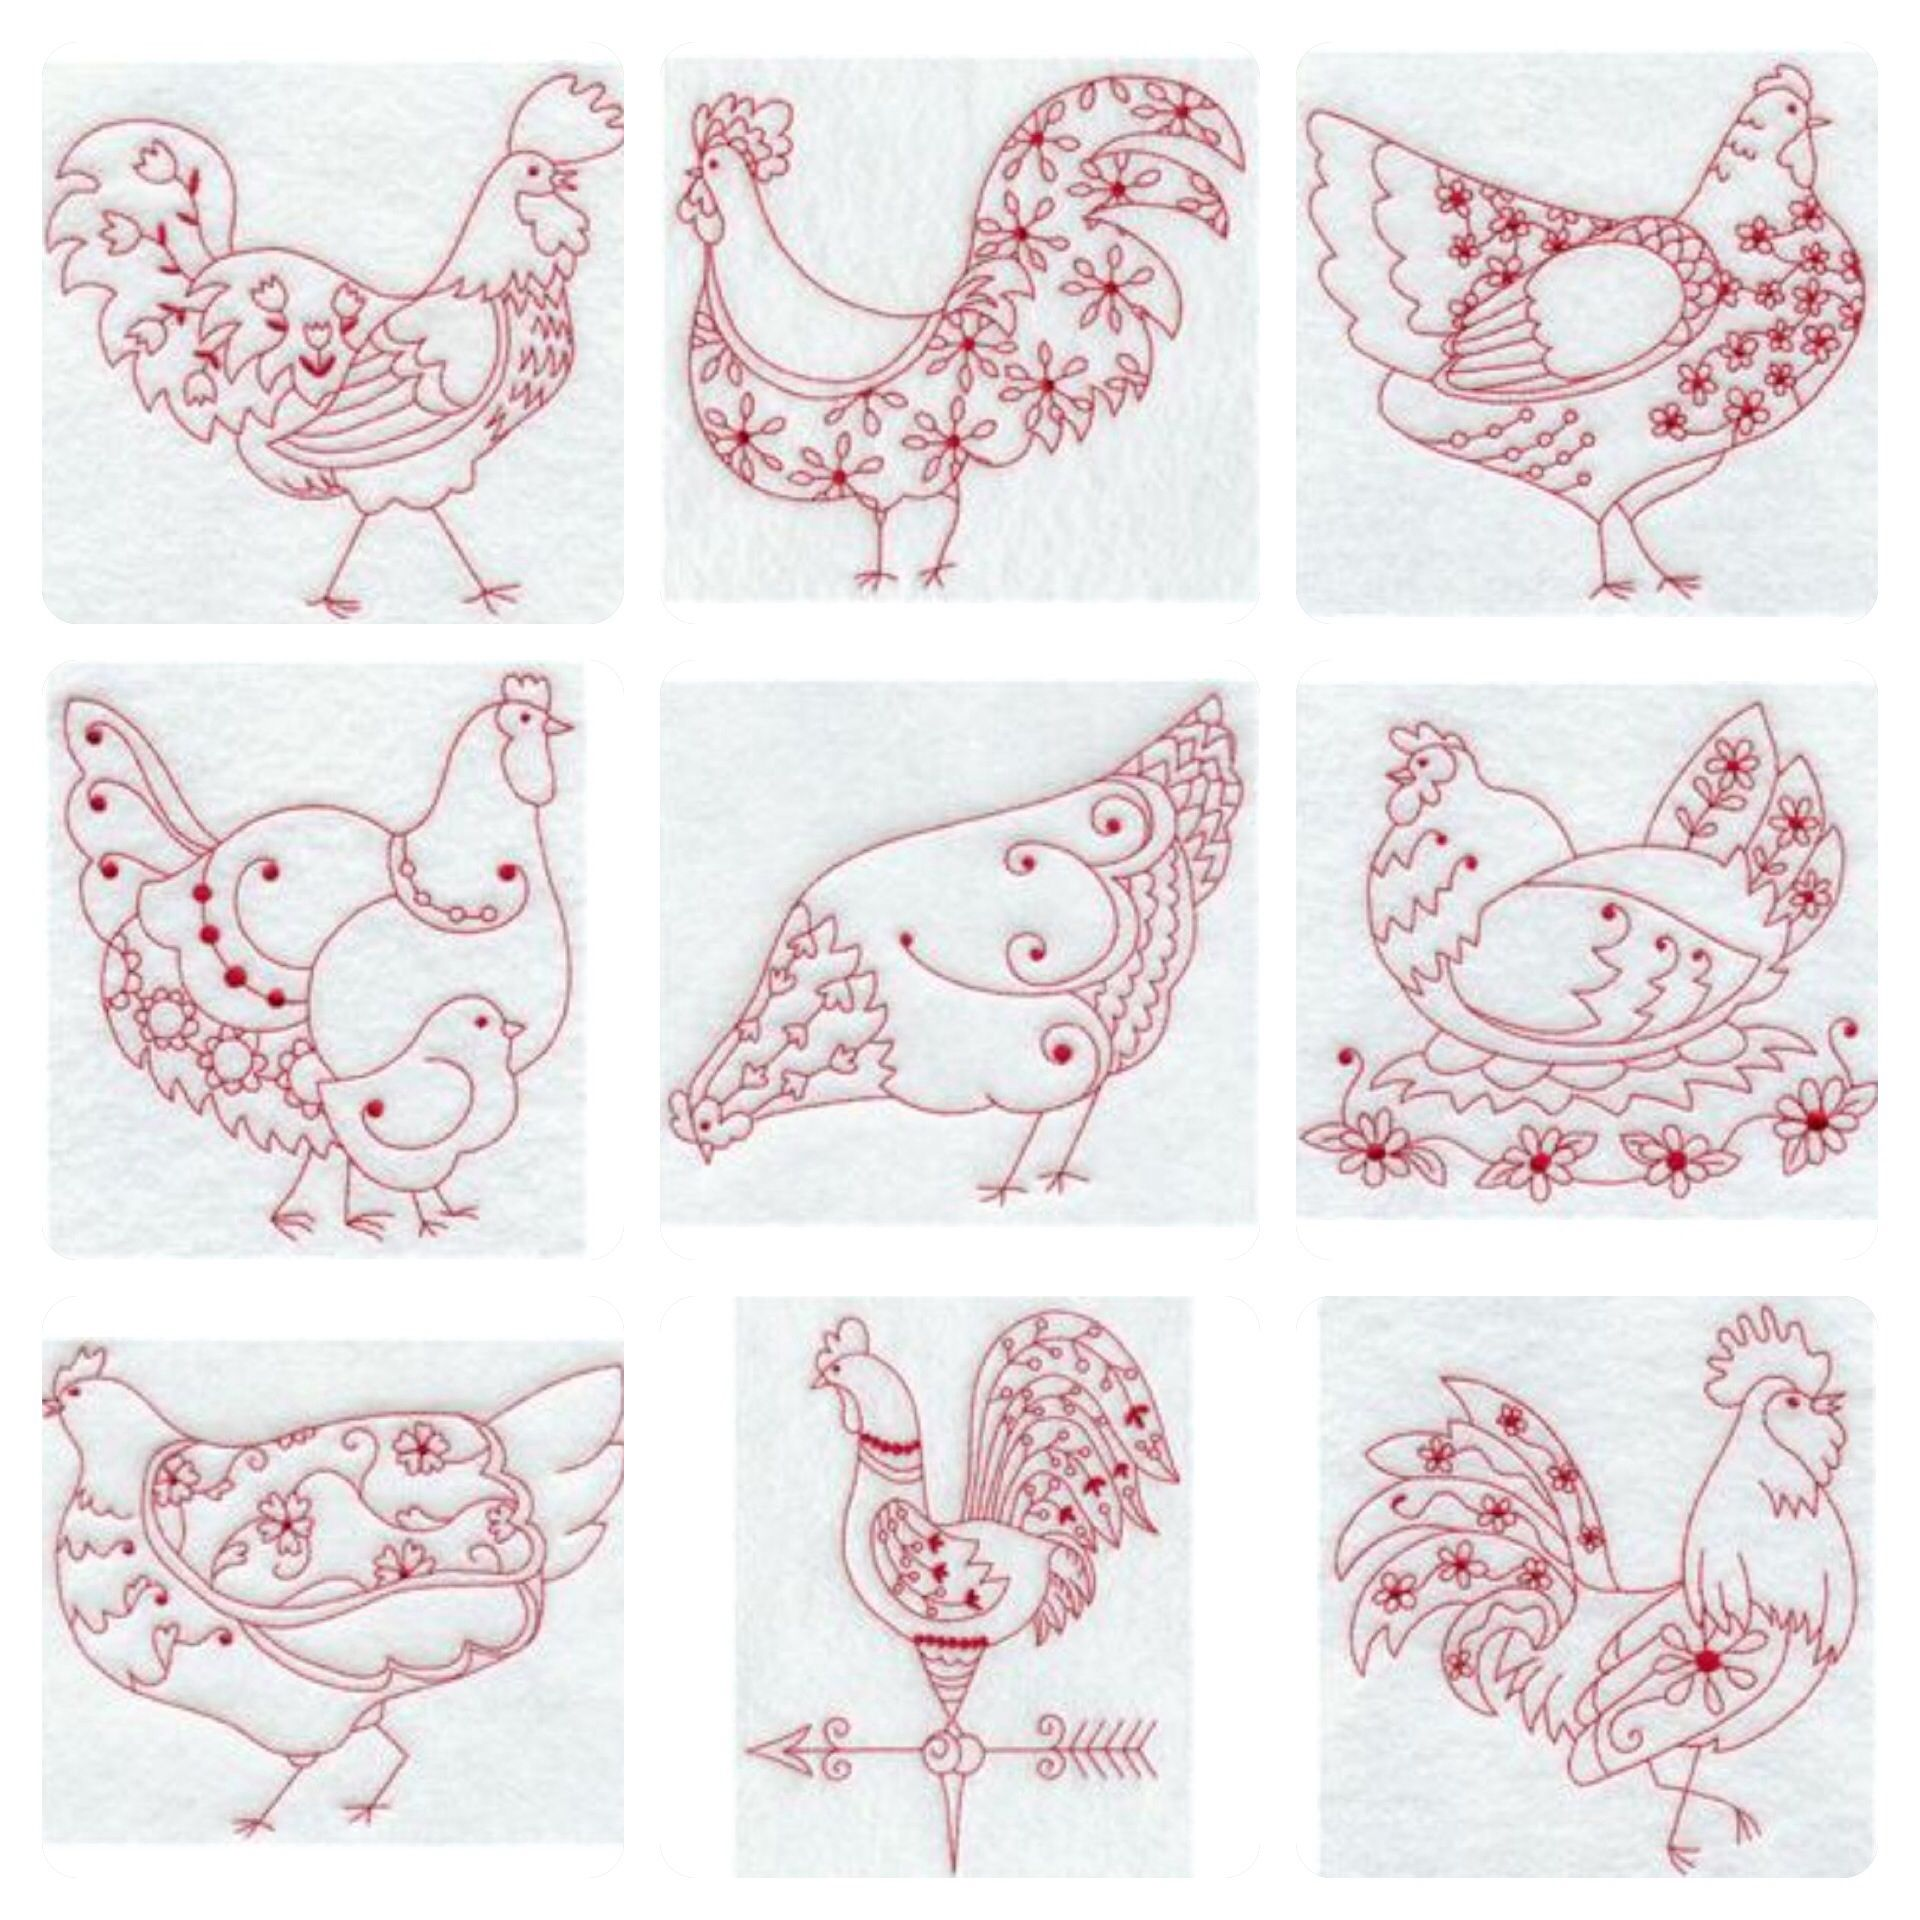 Hen so cute zentangle pinterest hens red work embroidery and